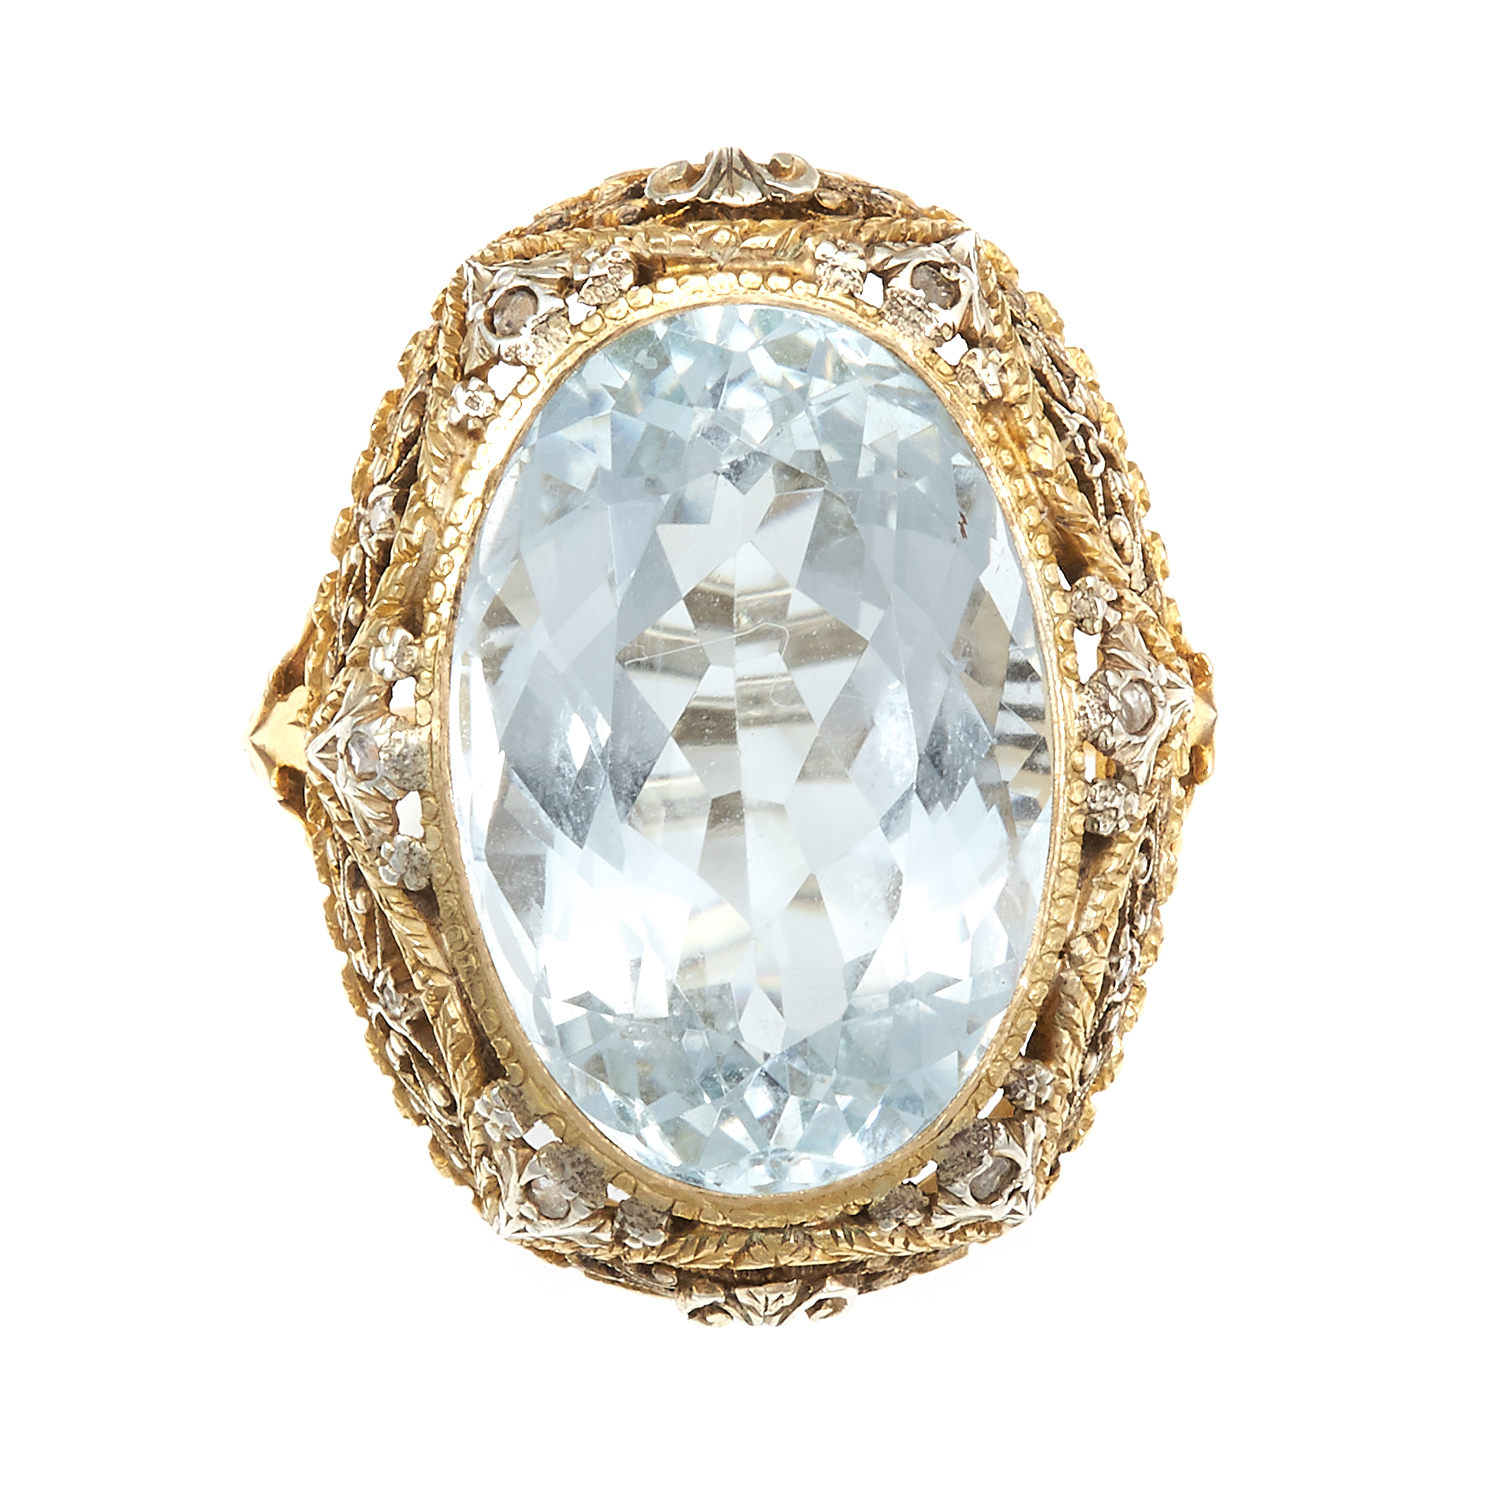 Los 3 - AN ANTIQUE AQUAMARINE AND DIAMOND RING in high carat gold, the oval cut aquamarine of 20.25 carats